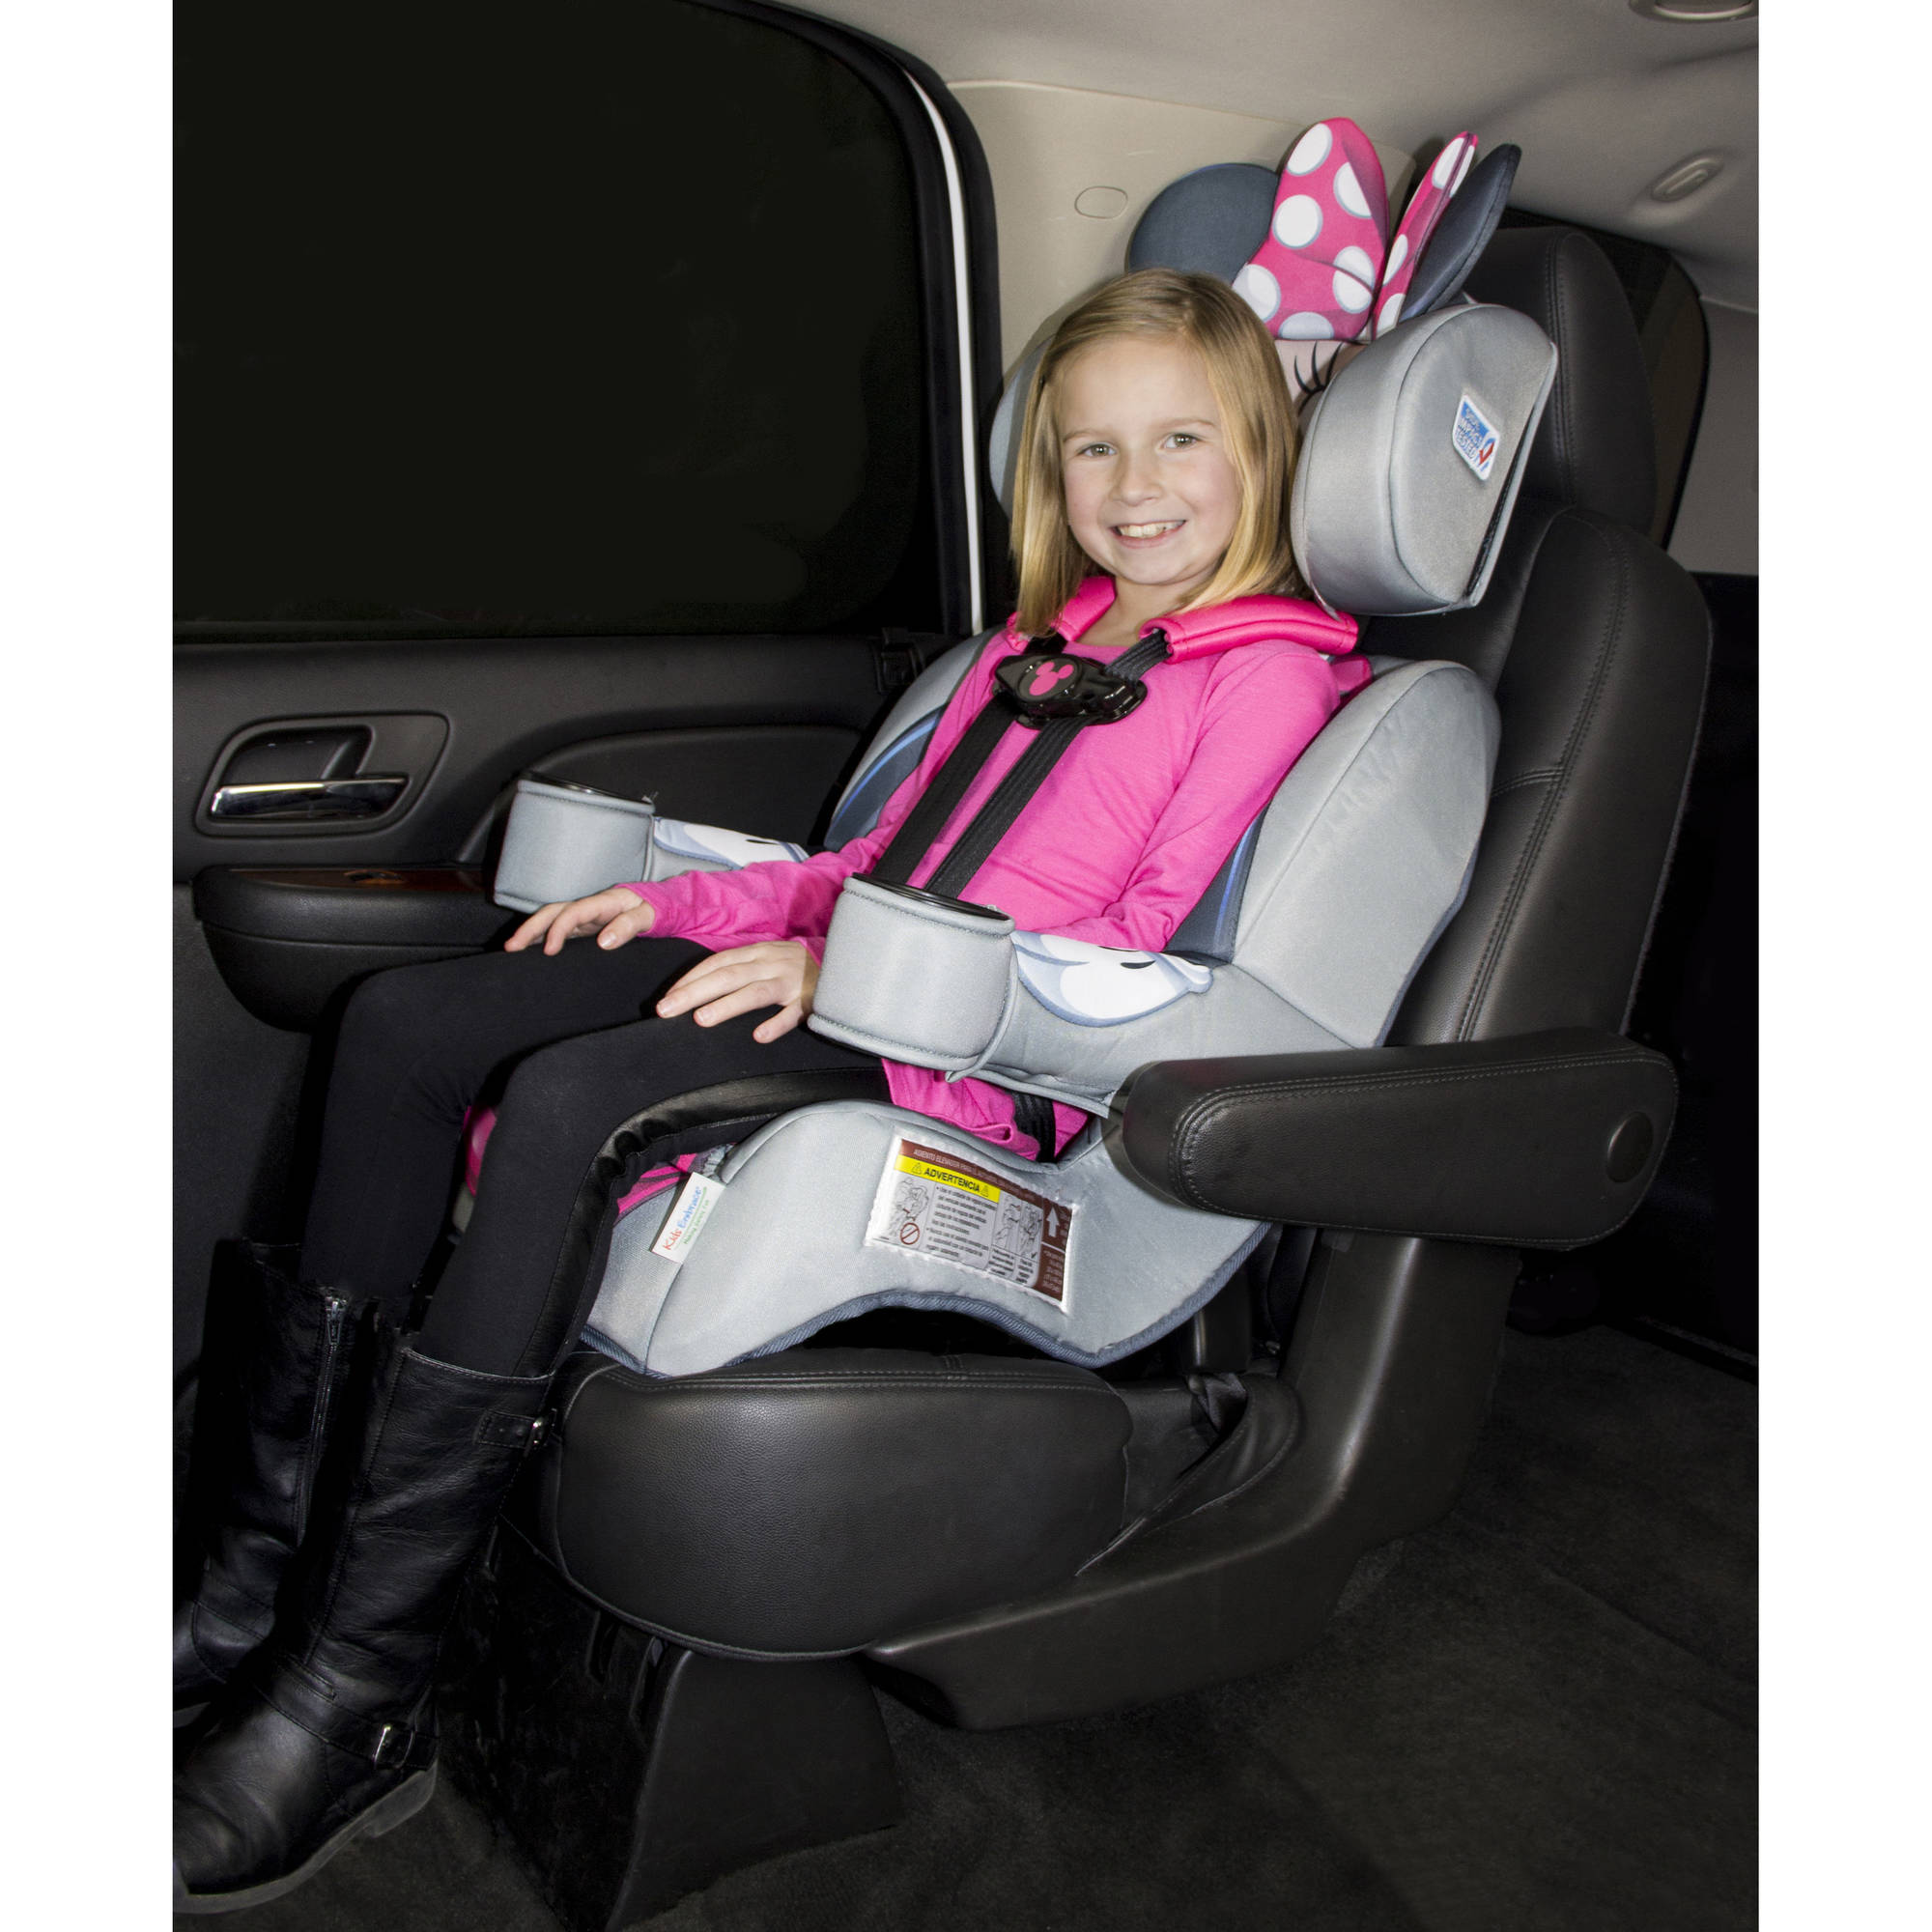 Kidsembrace Combination Booster Car Seat Disney Minnie Mouse